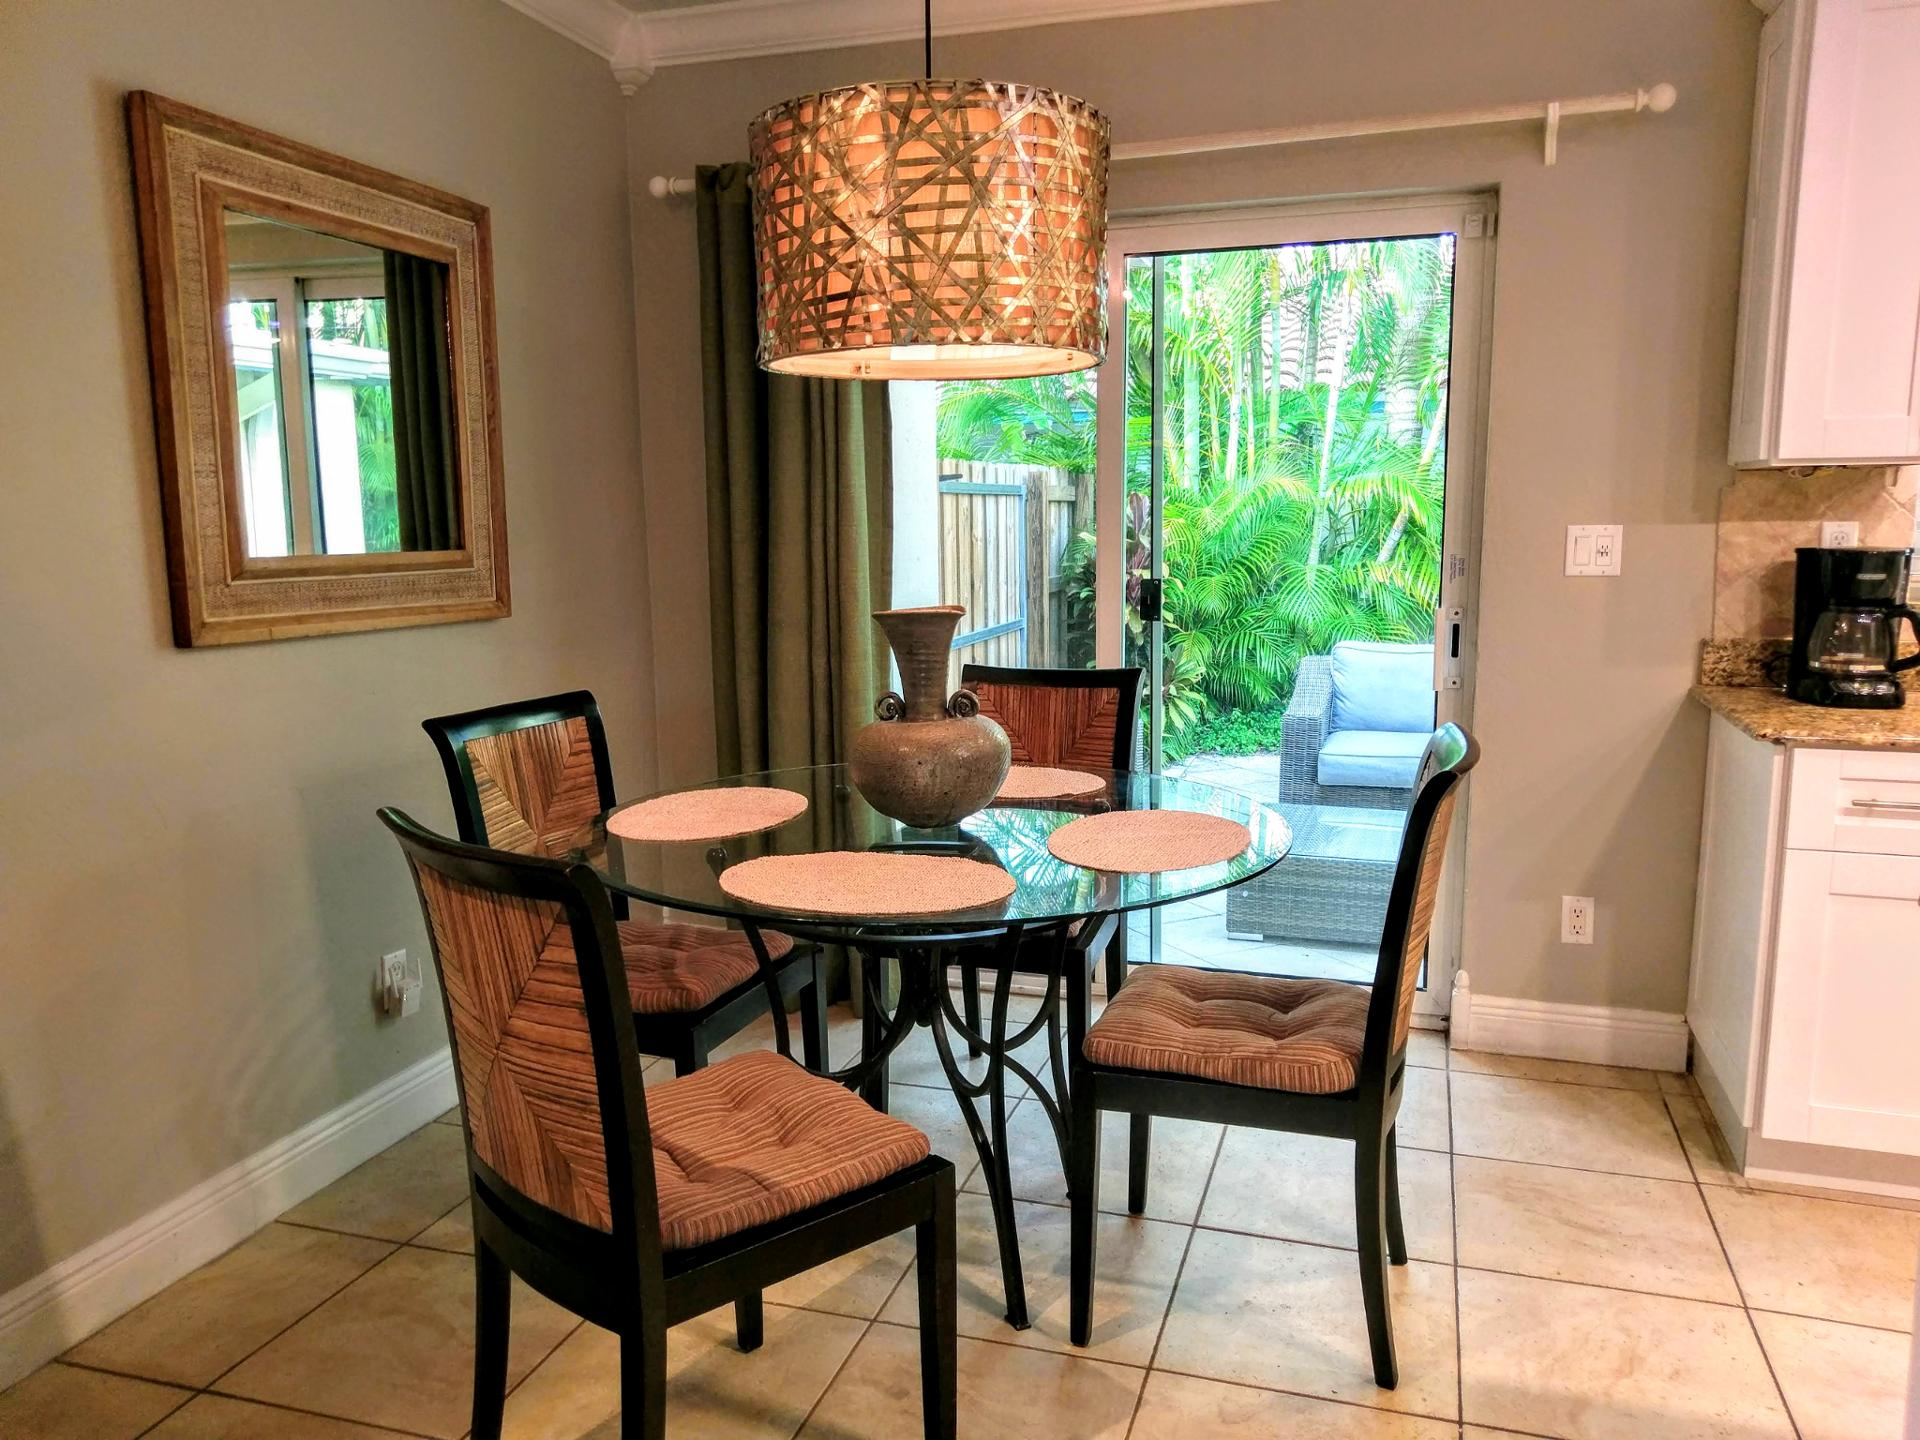 Vacation rental in Ft. Lauderdale Florida